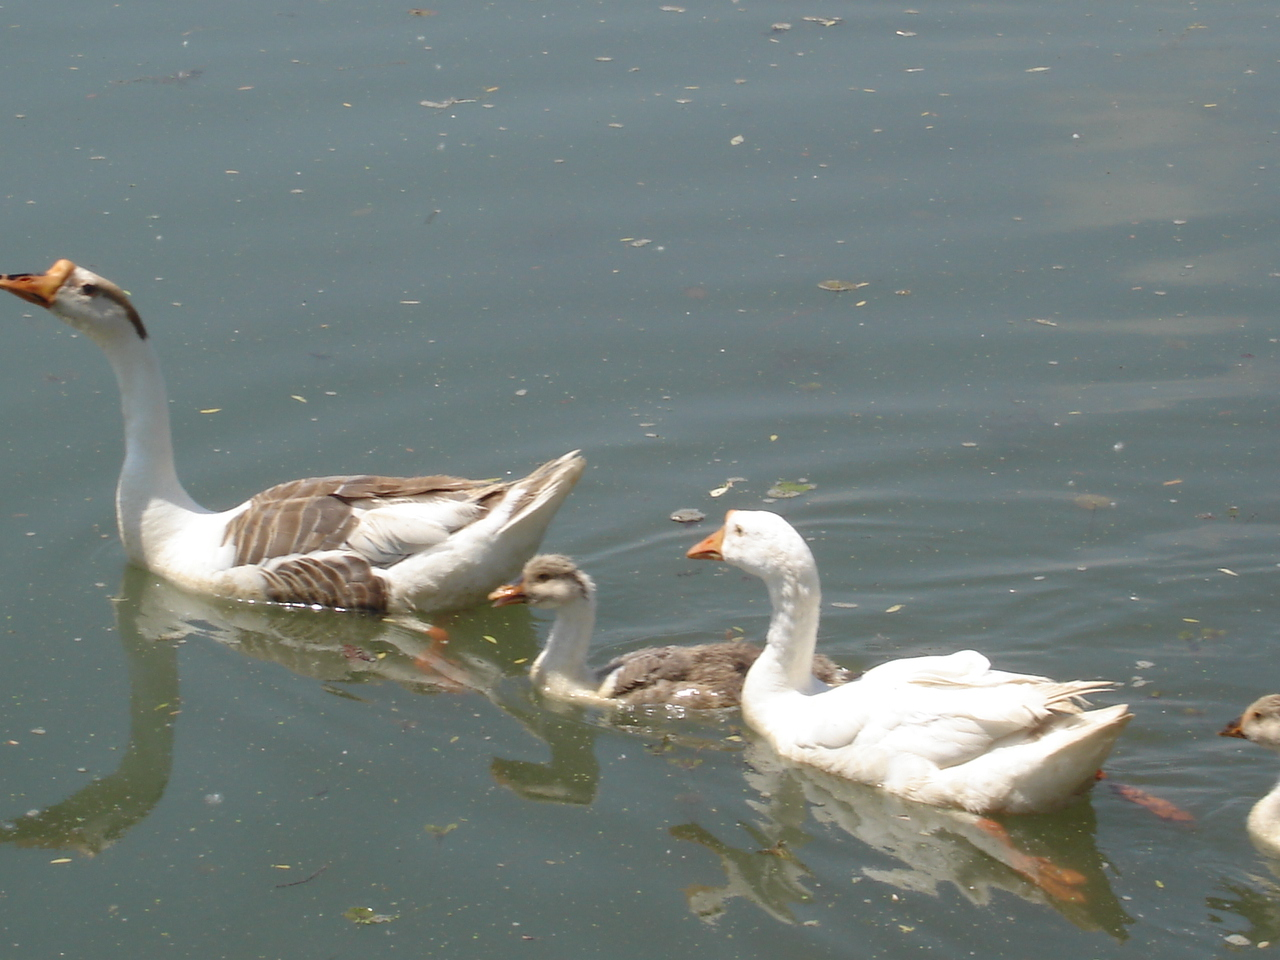 Ducks in the lake